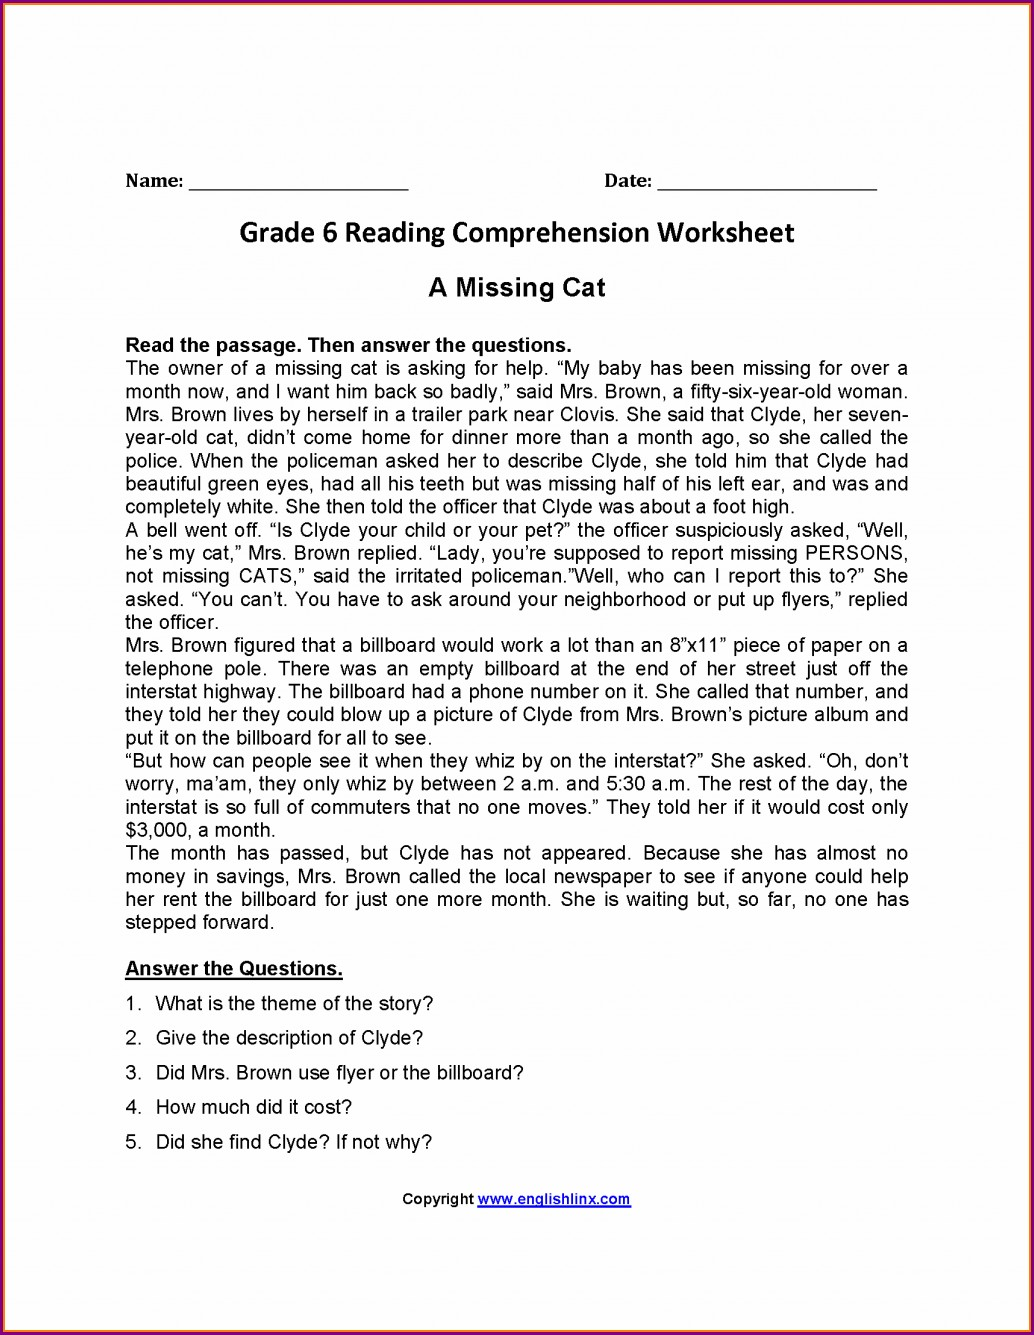 Comprehension Worksheets For Grade 6